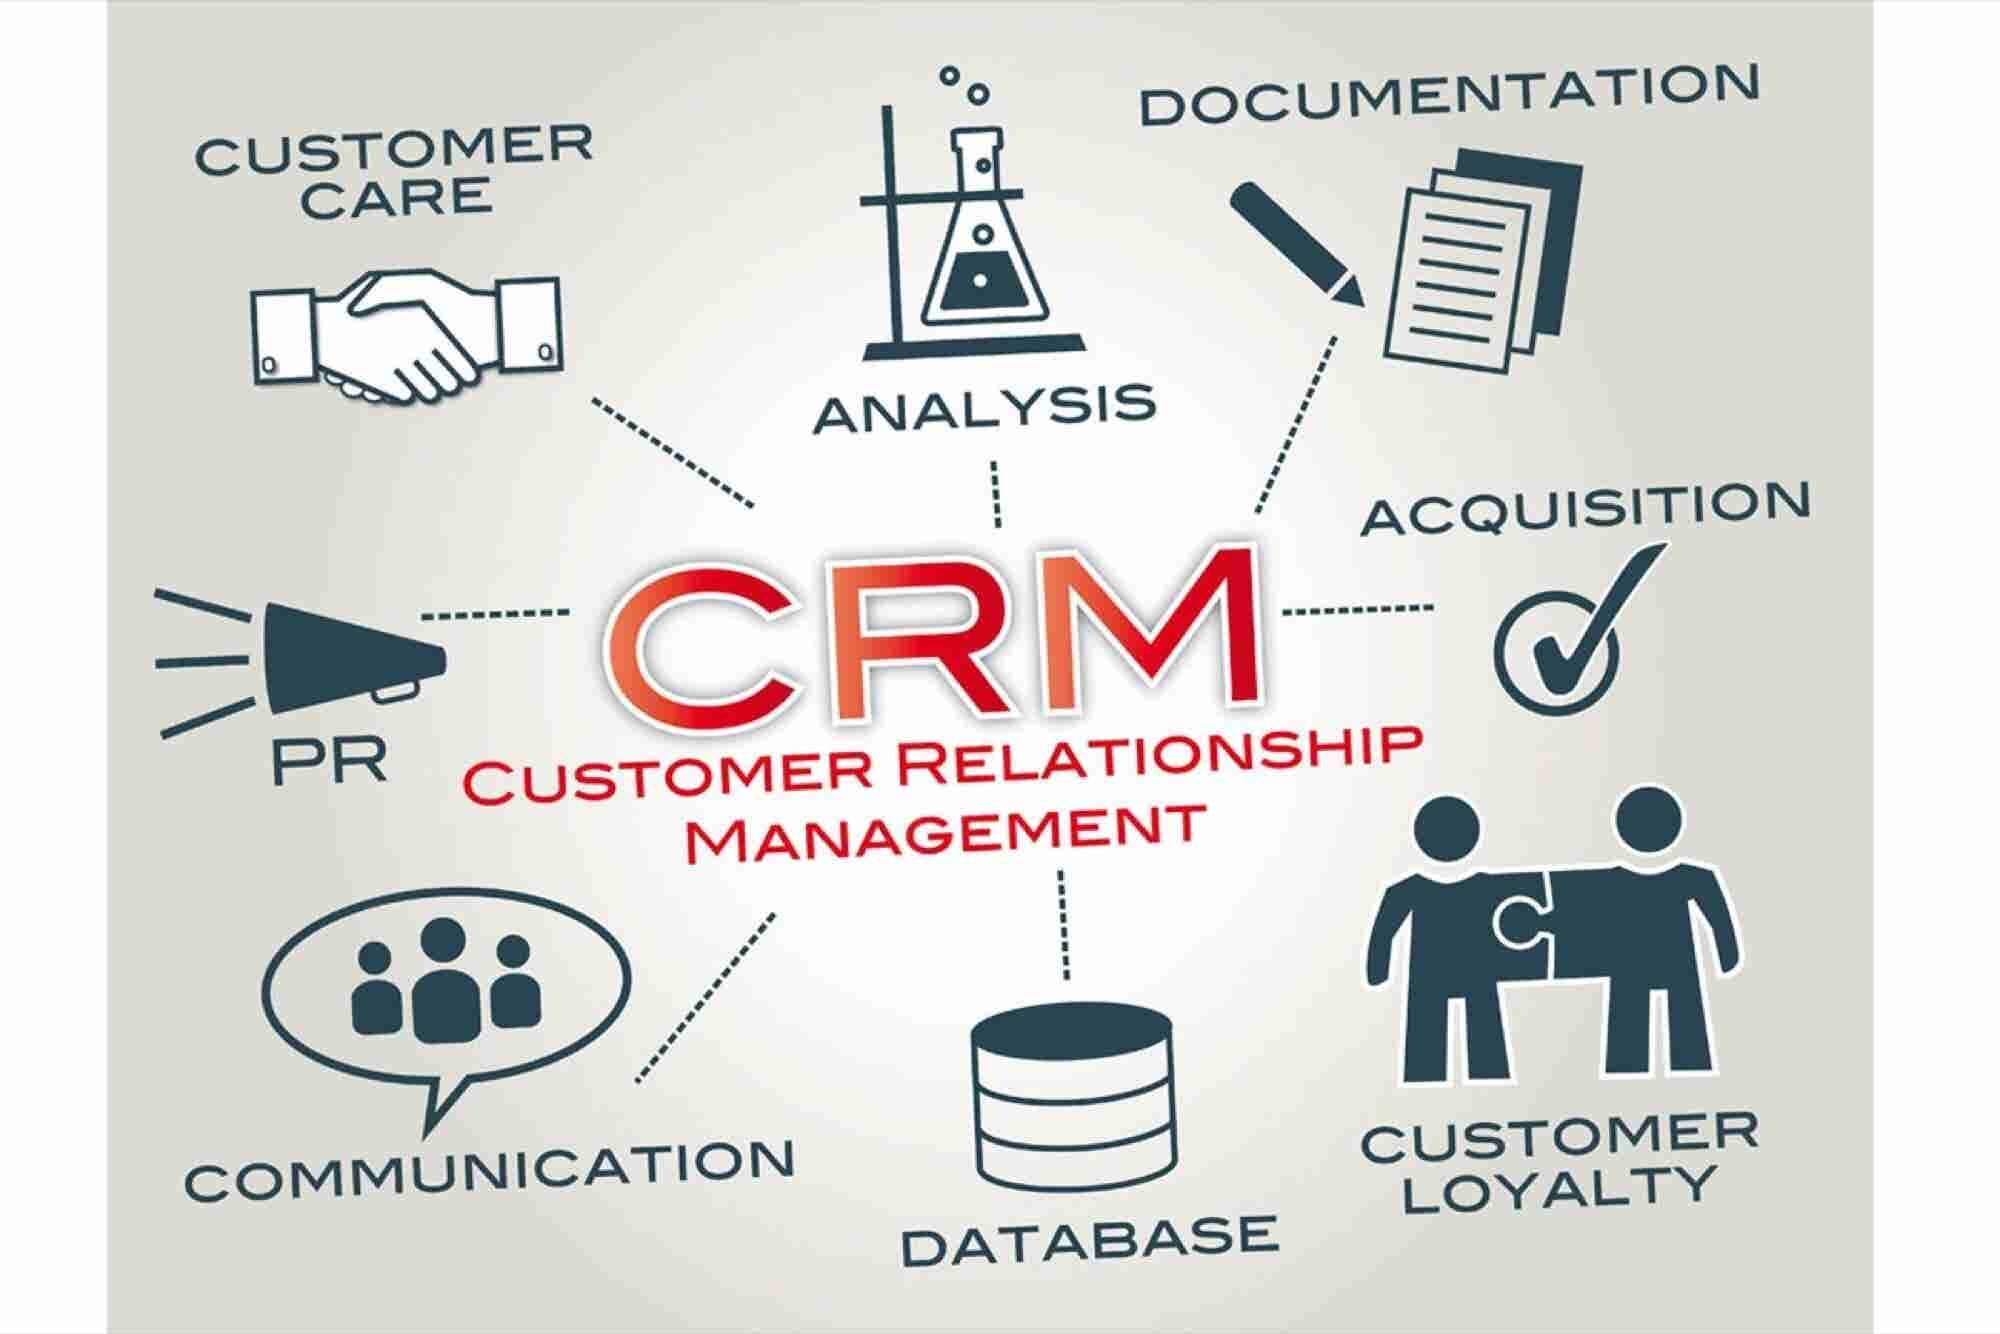 Customer Relationship Management: A Necessity for Automotive Sector